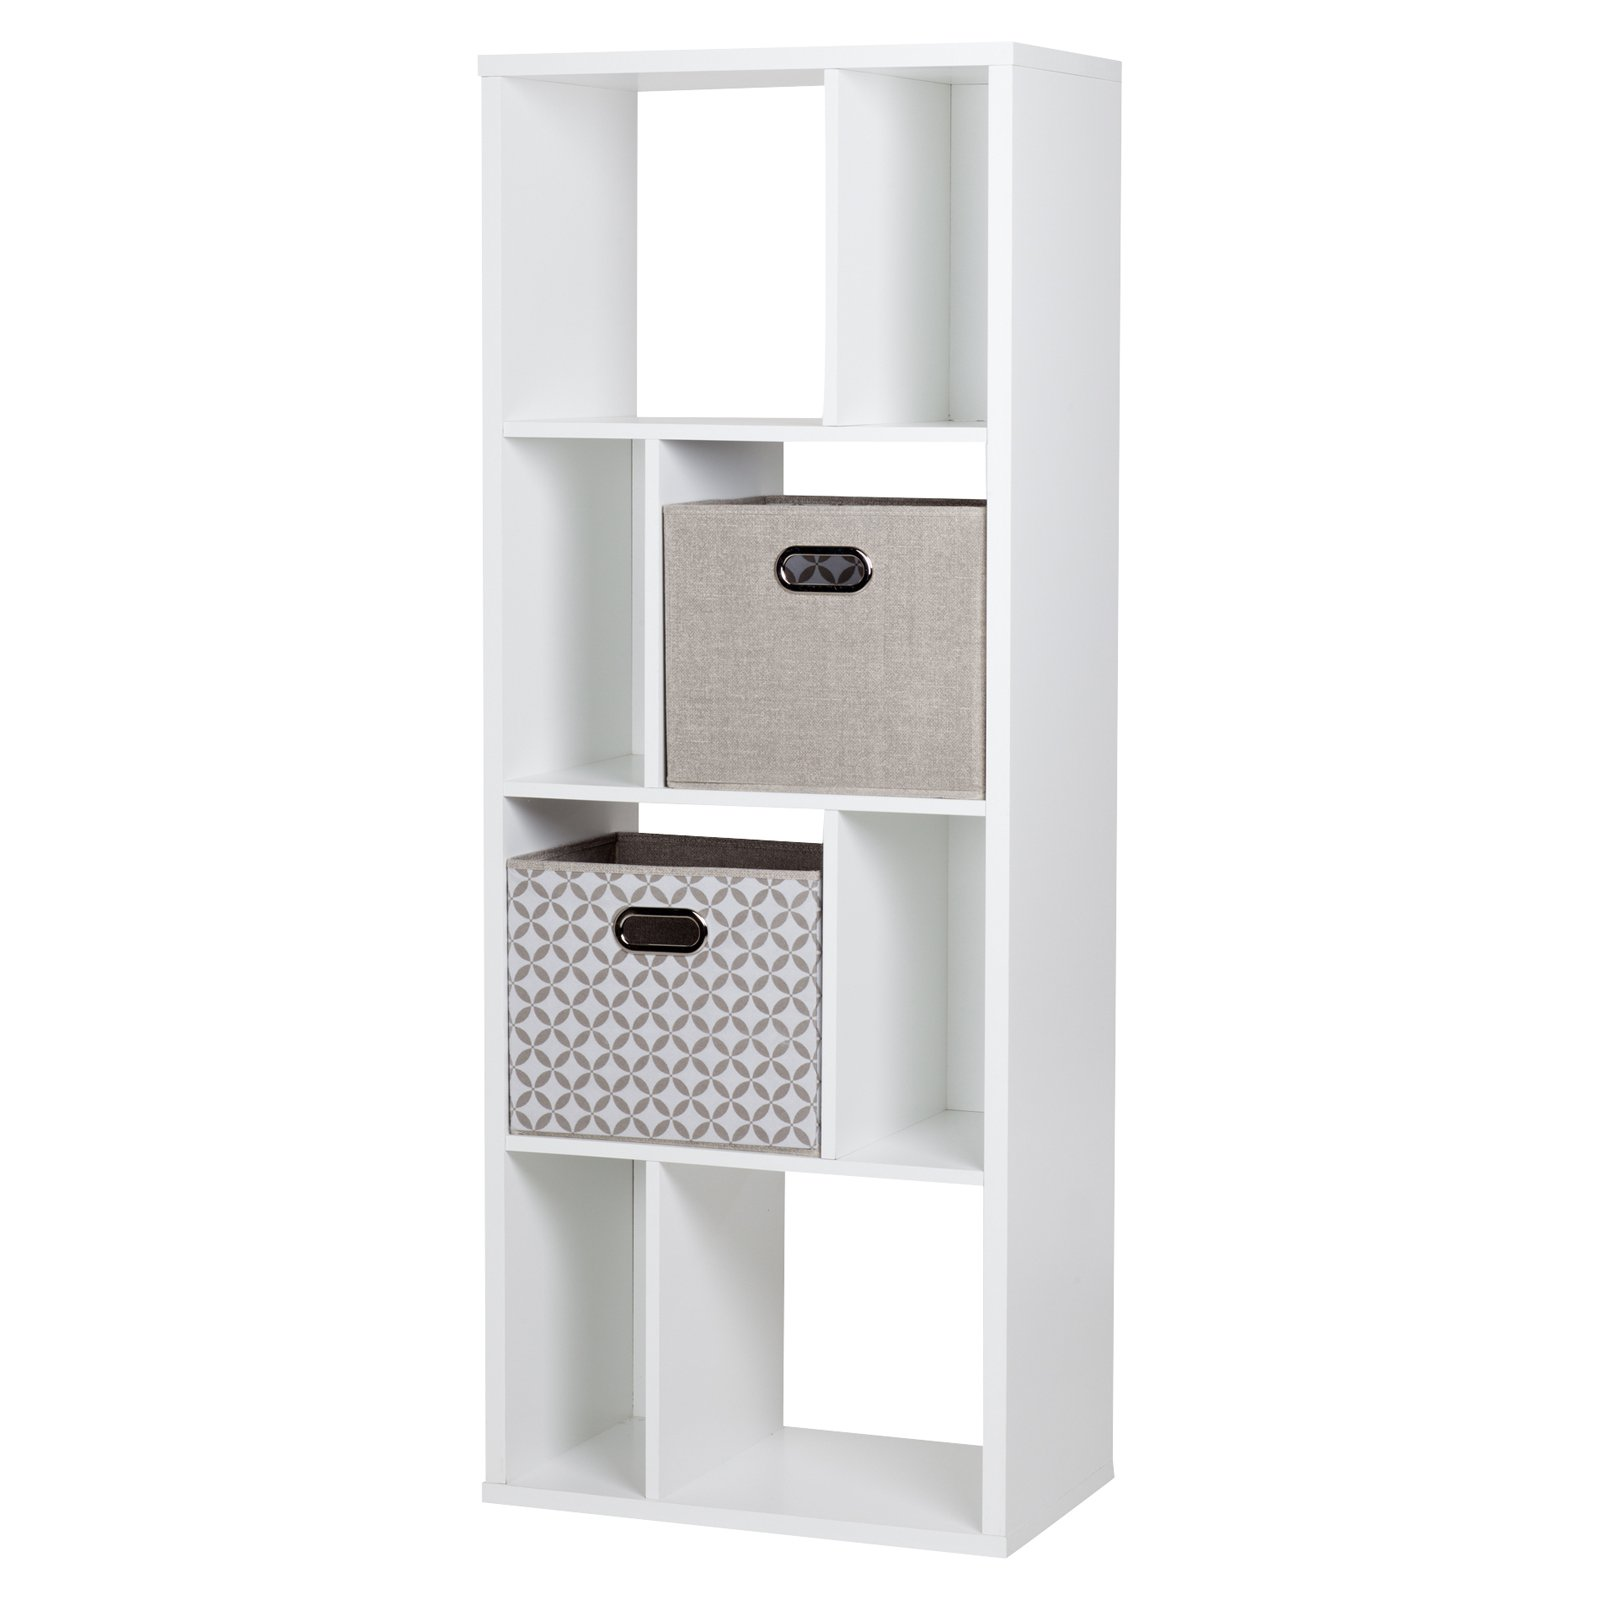 Reveal 8 Cube Shelving Unit with 2 Fabric Storage Baskets by South Shore by South Shore